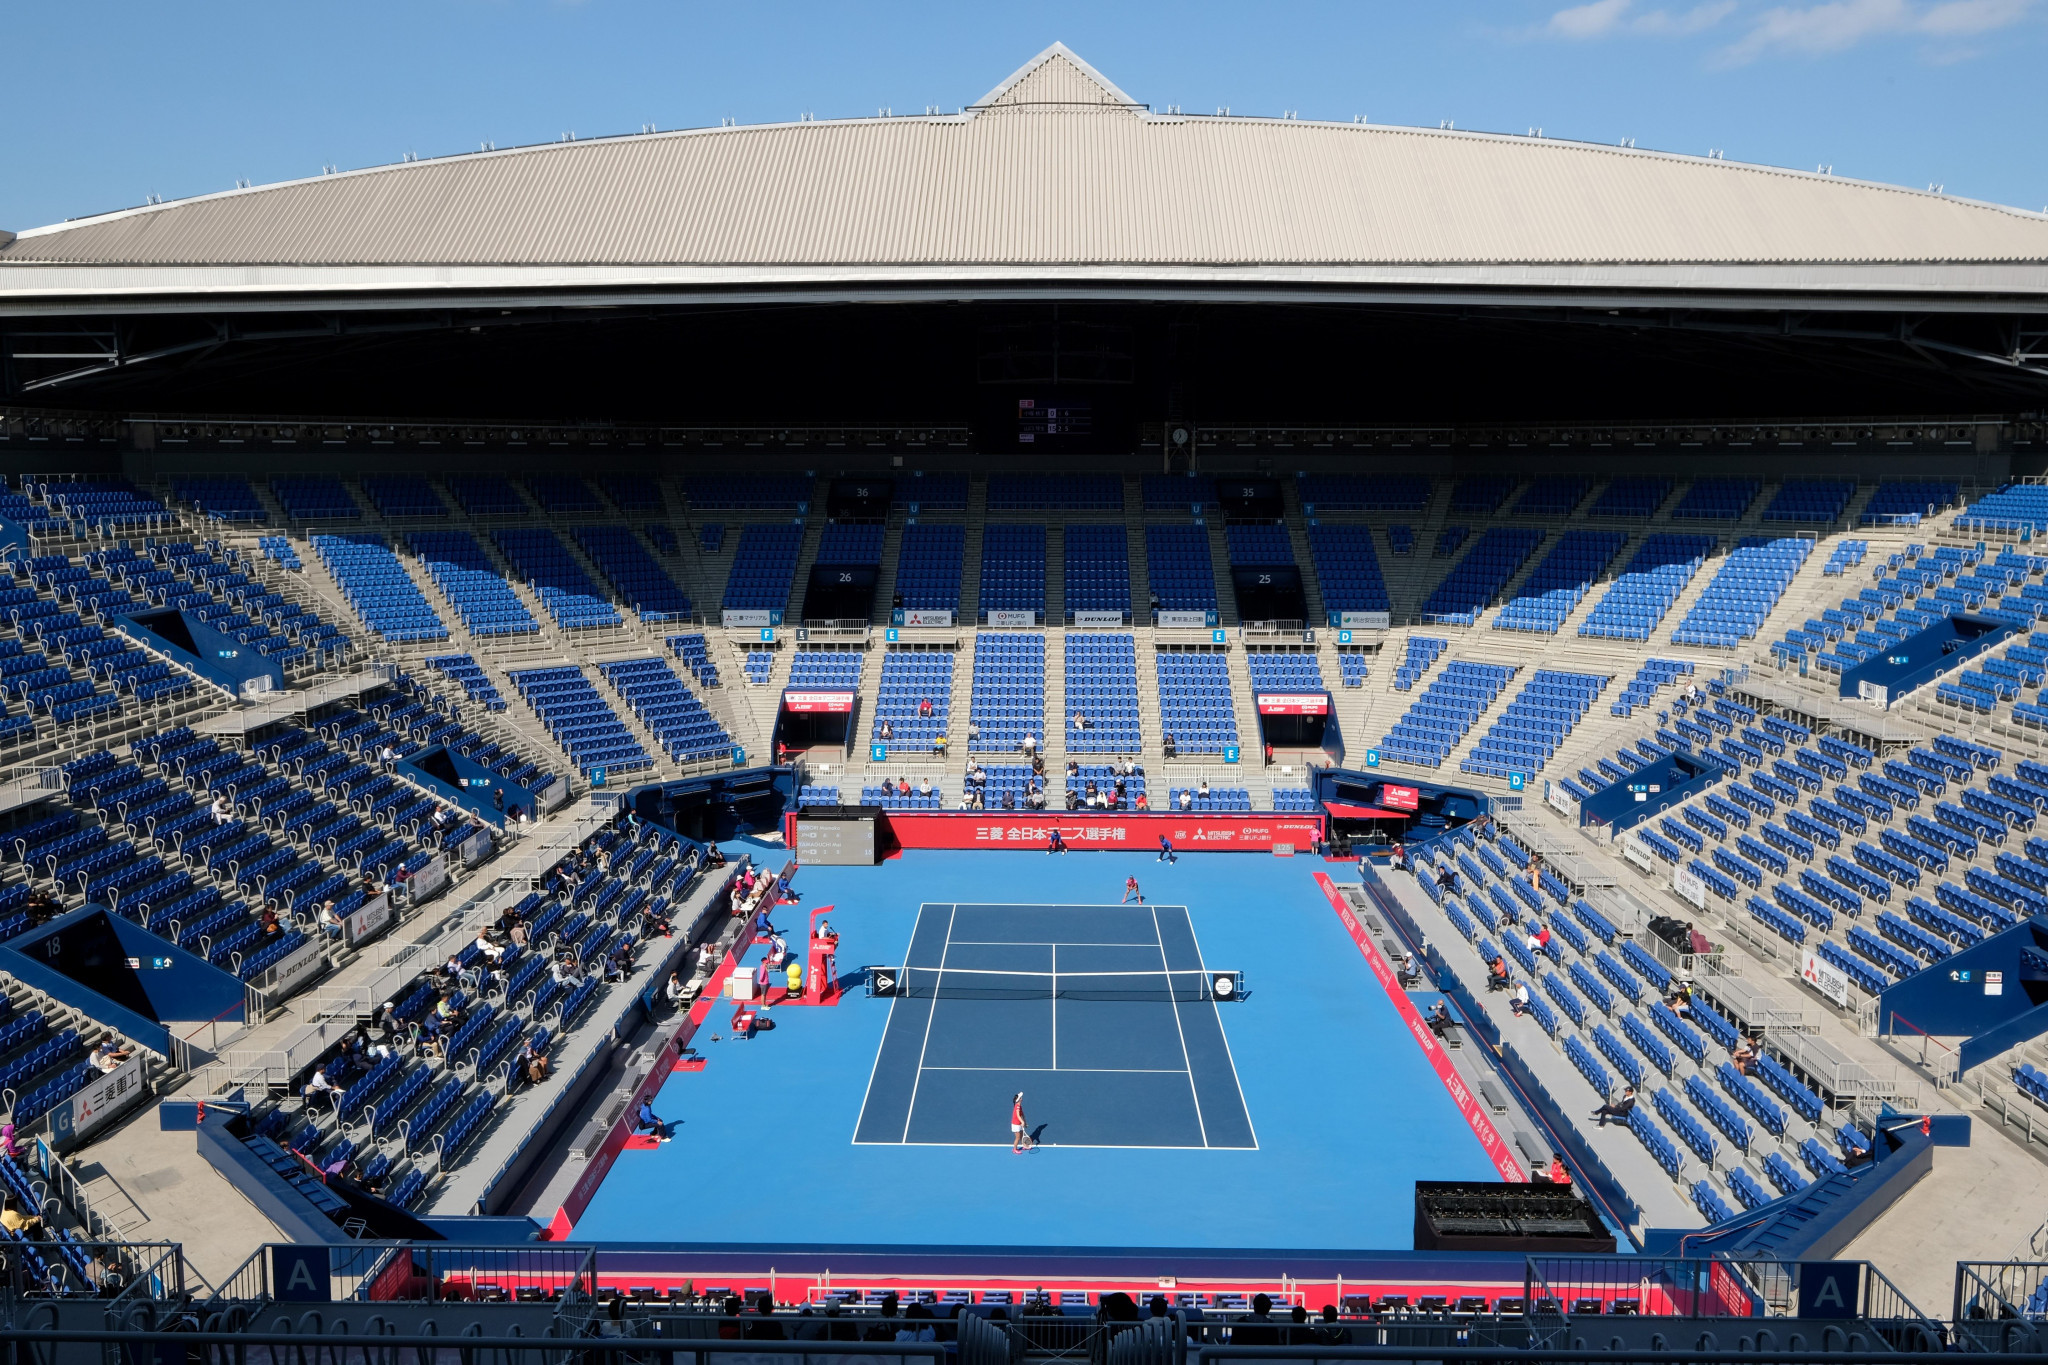 ITF impressed by Ariake Tennis Park after Tokyo 2020 test event